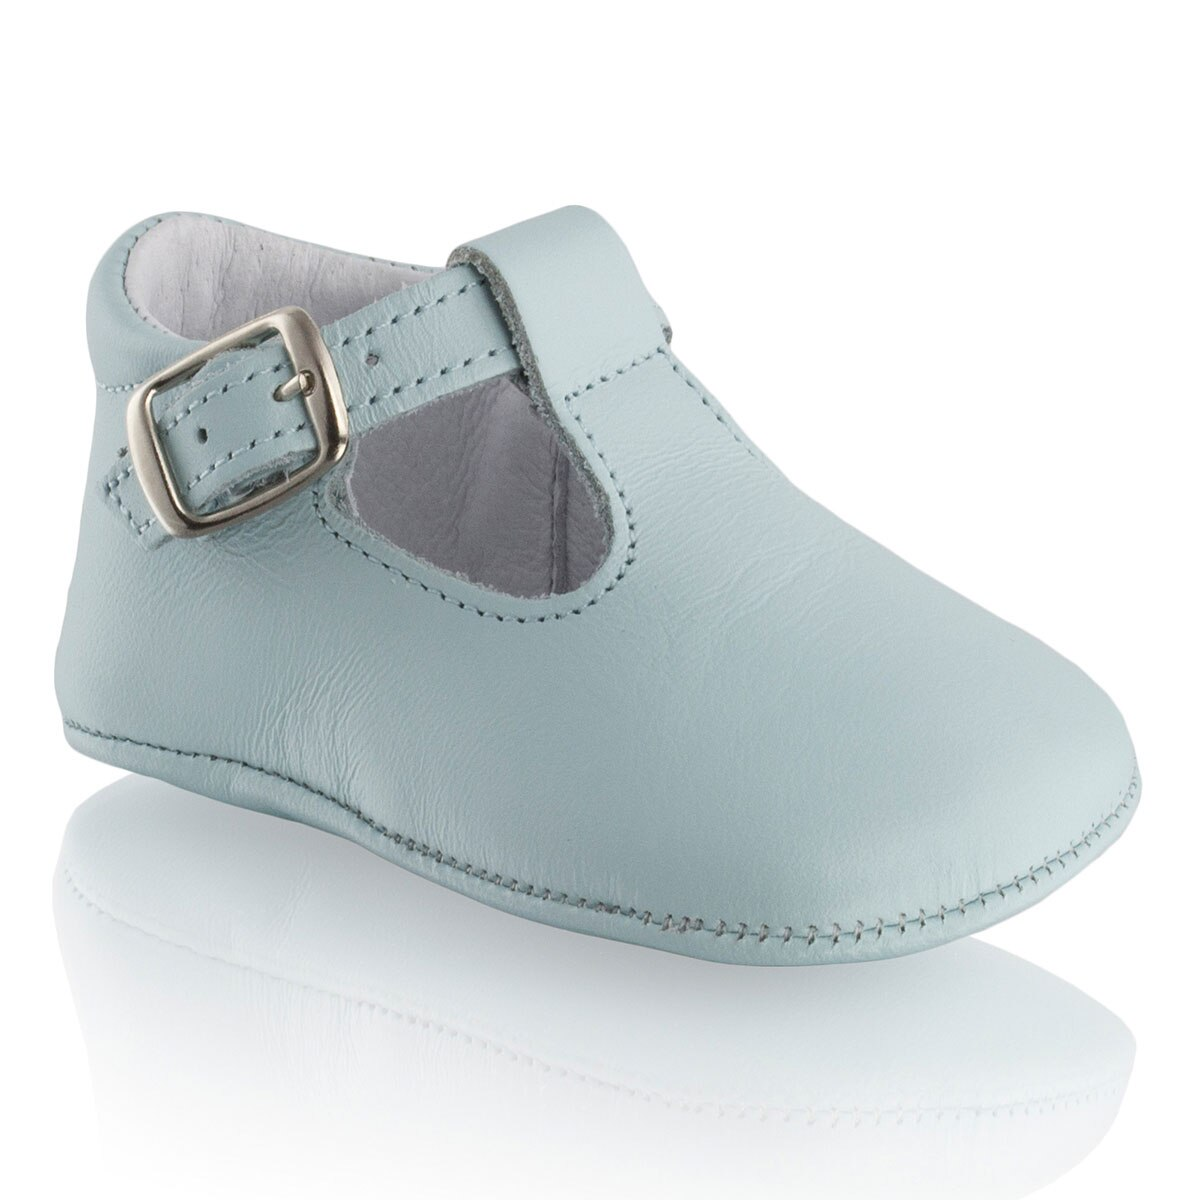 Russell and Bromley FREDDIE T-Bar Pram Shoe